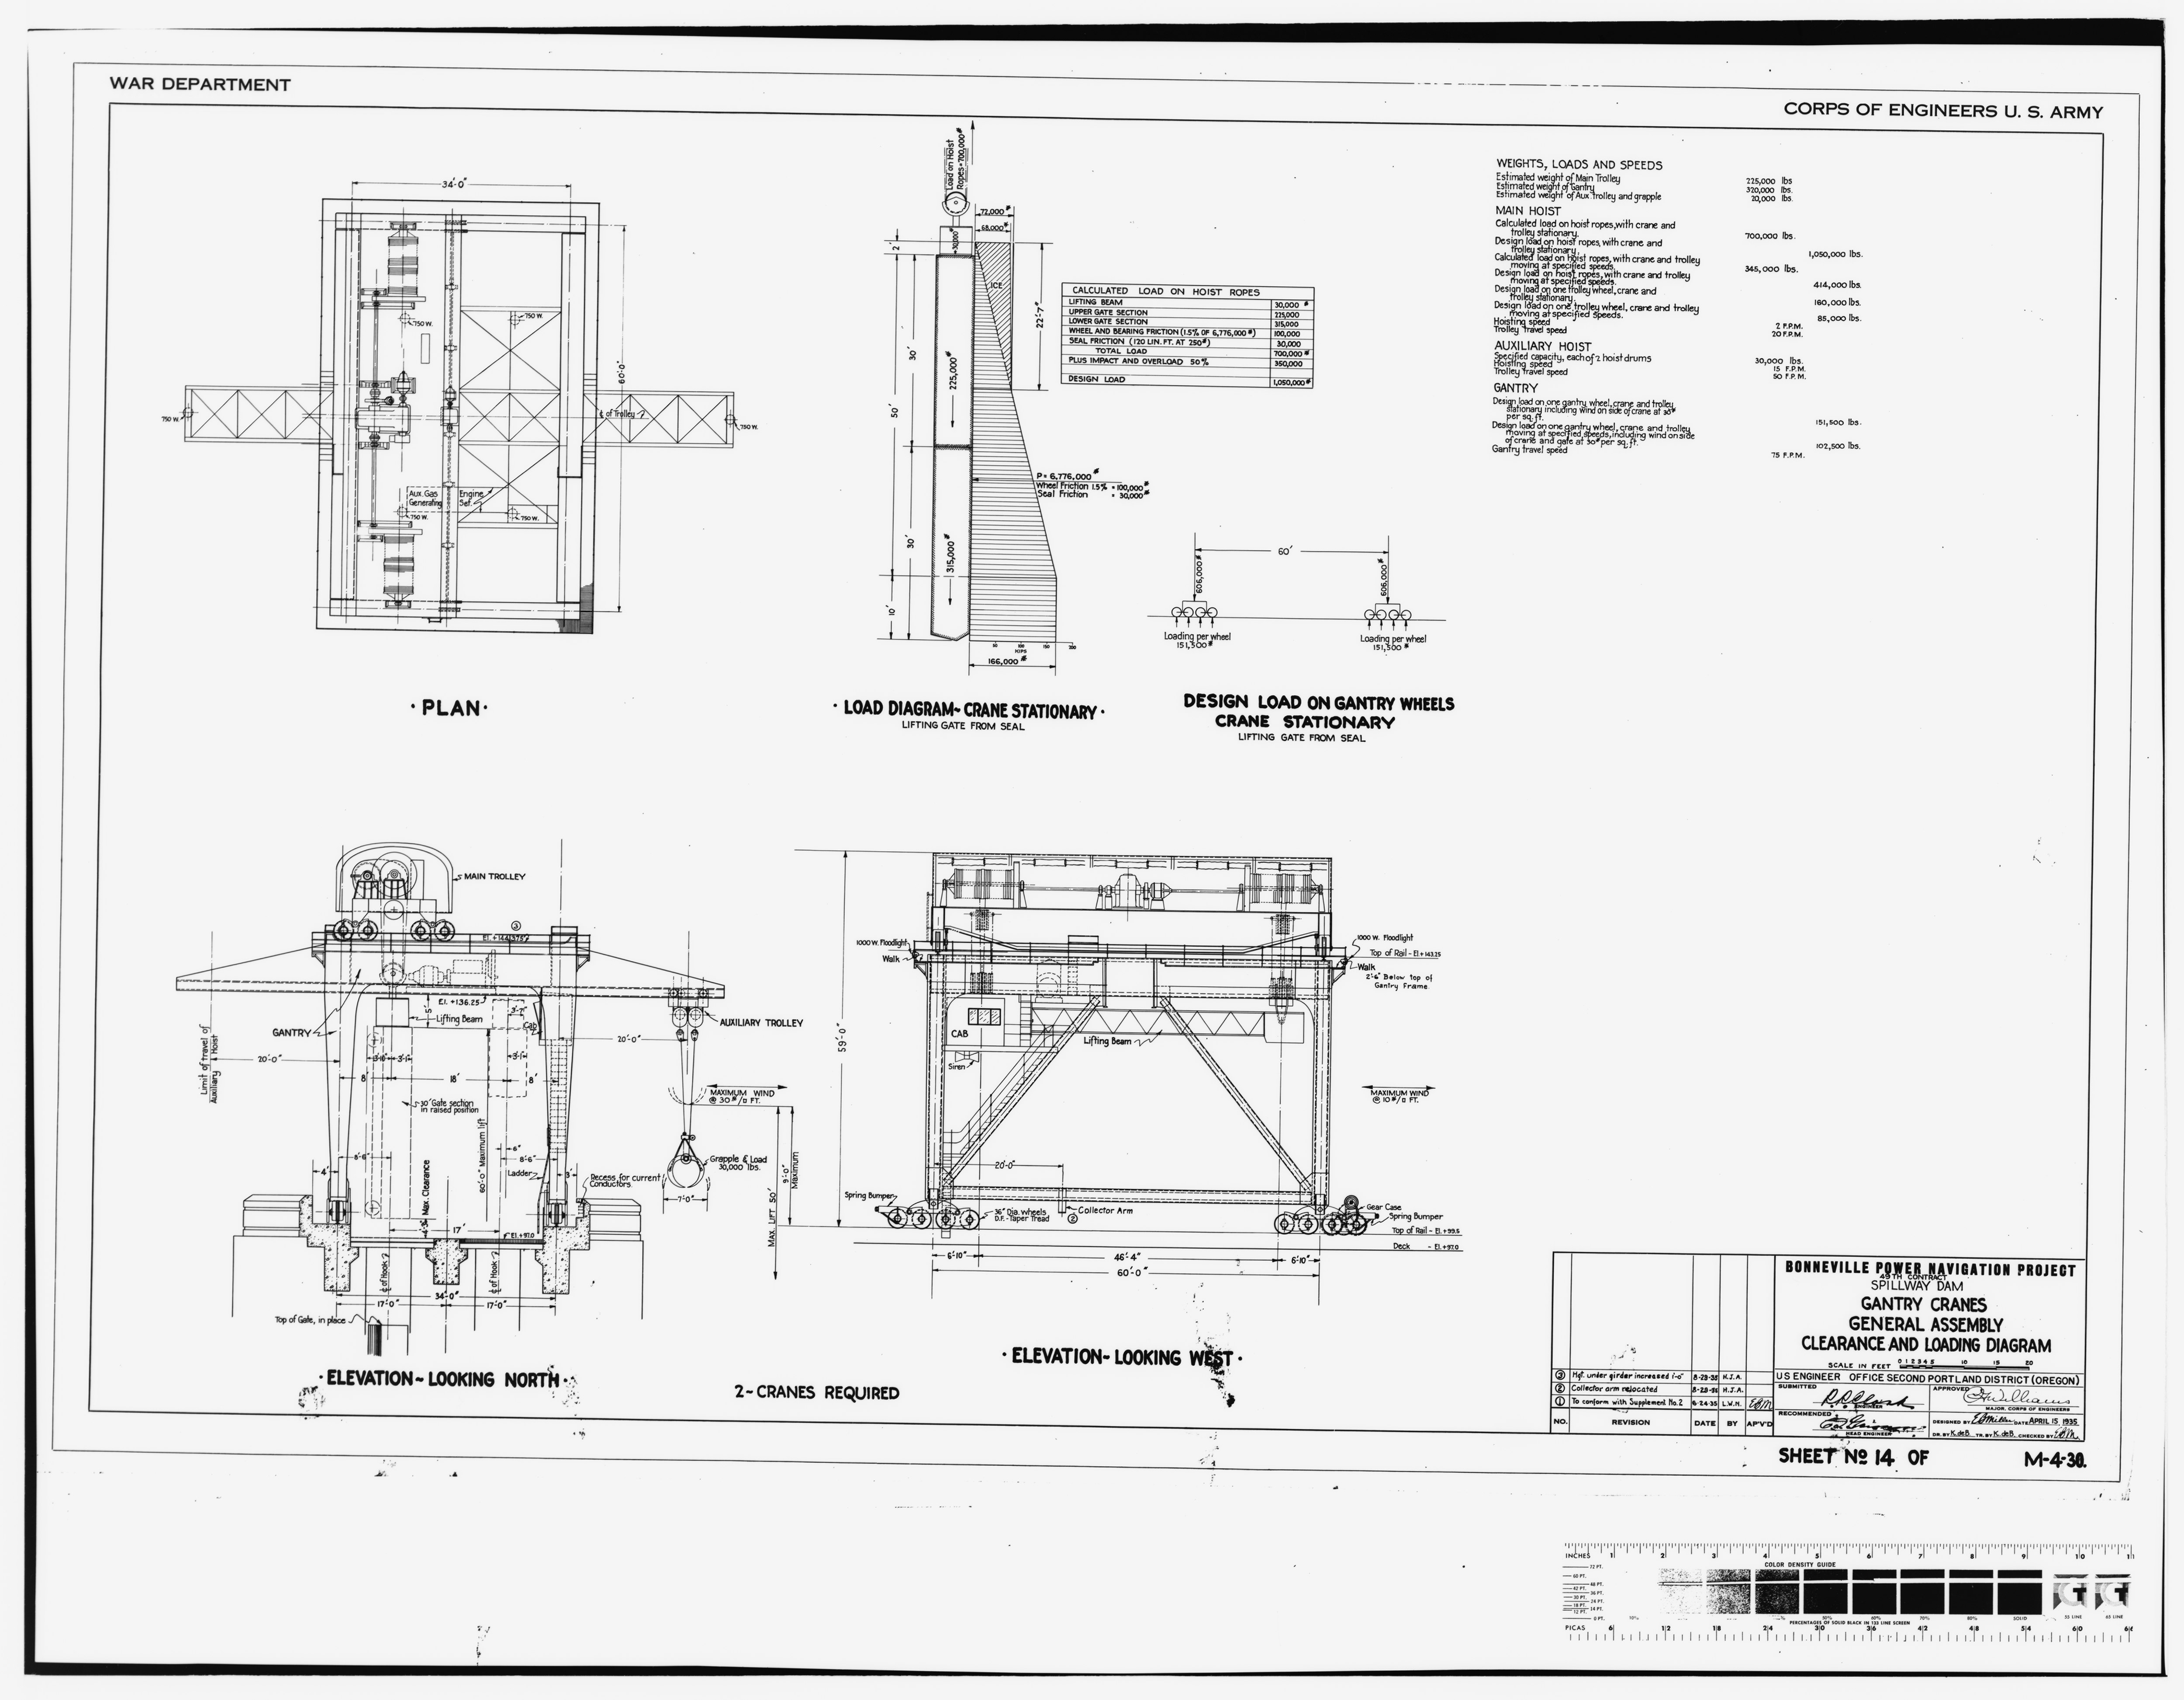 File Photocopy Of Original Construction Drawing 15 April